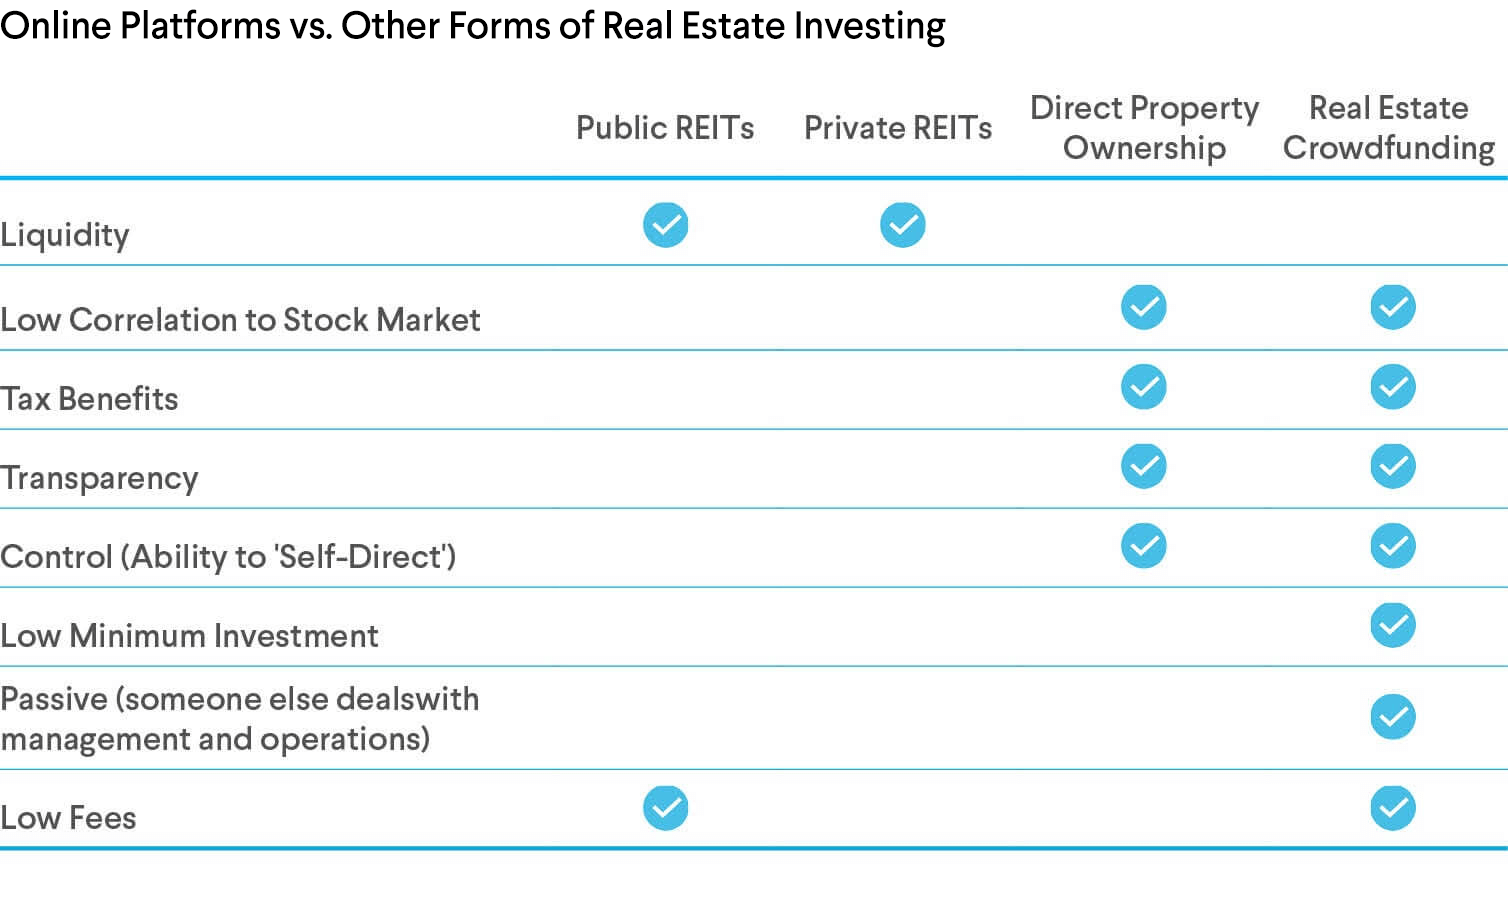 Real Estate Crowdfunding vs. Other Forms of Real Estate Investing